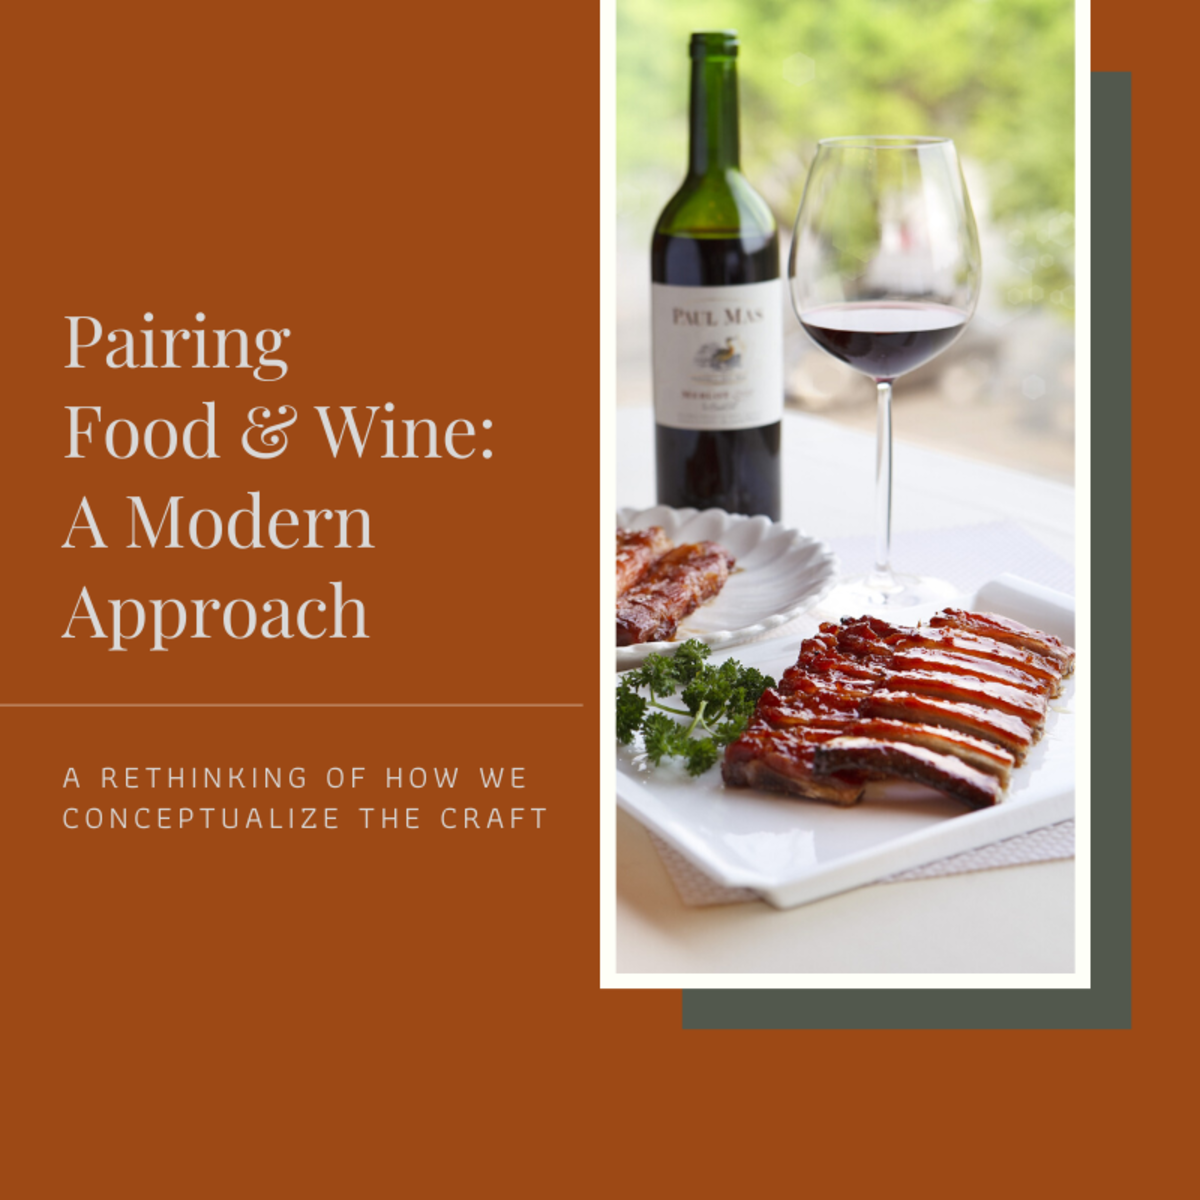 These are some of my opinions on how we should consider updating our thoughts about pairing certain wines with certain foods.